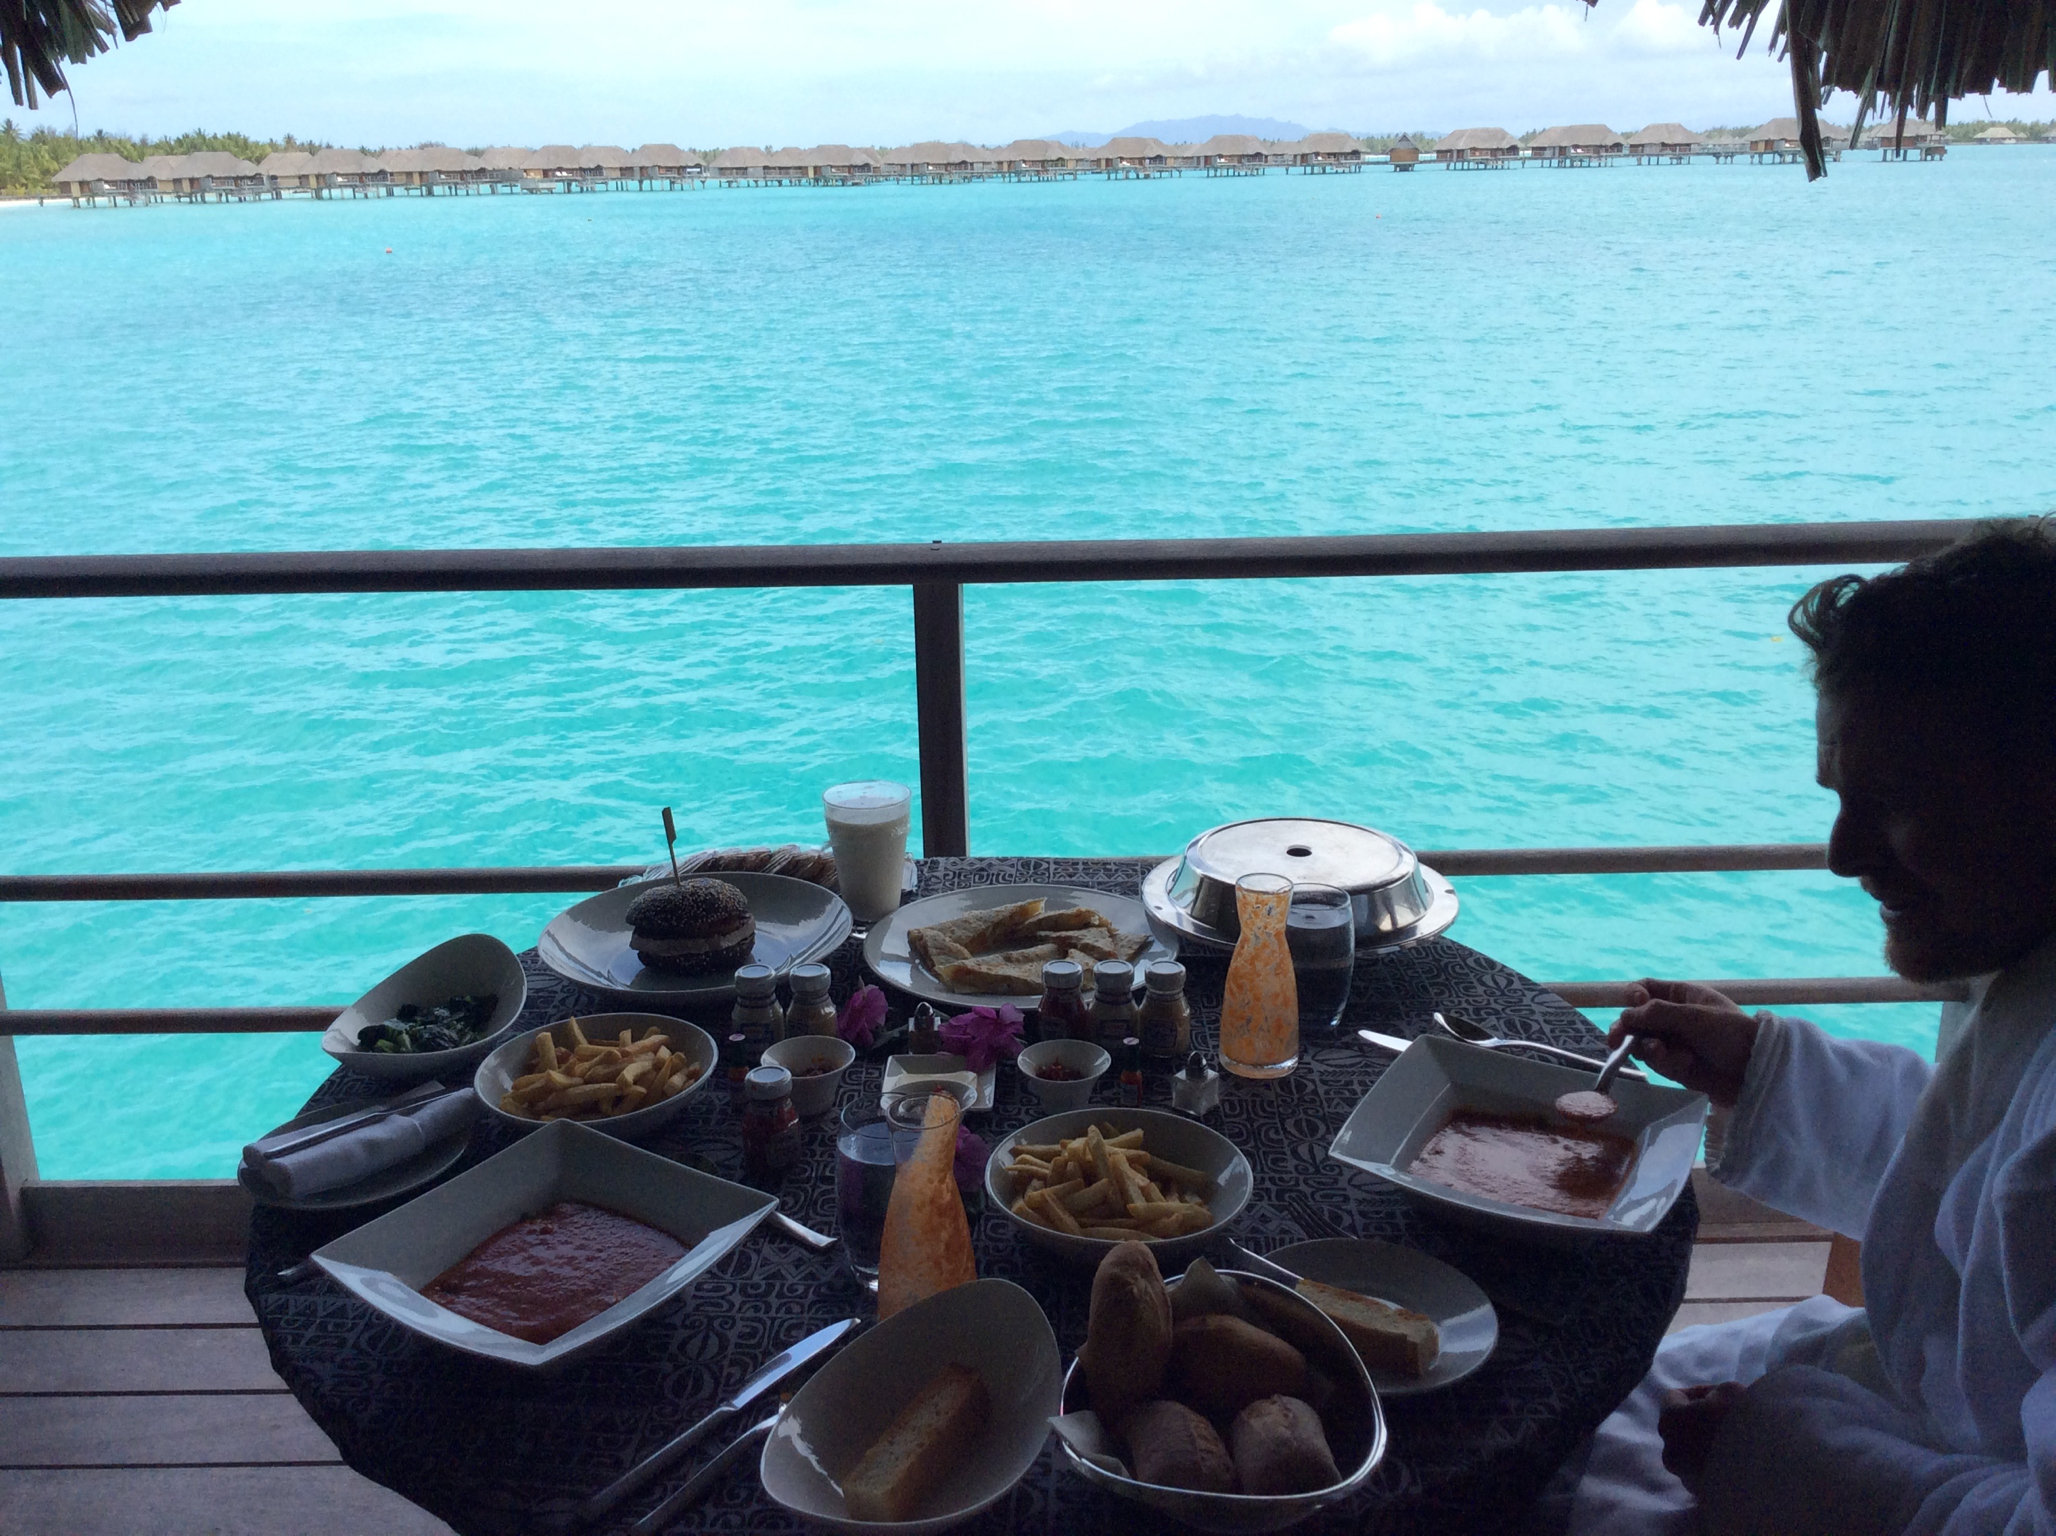 Breakfast in bed at our One-Bedroom Overwater Bungalow Suite.